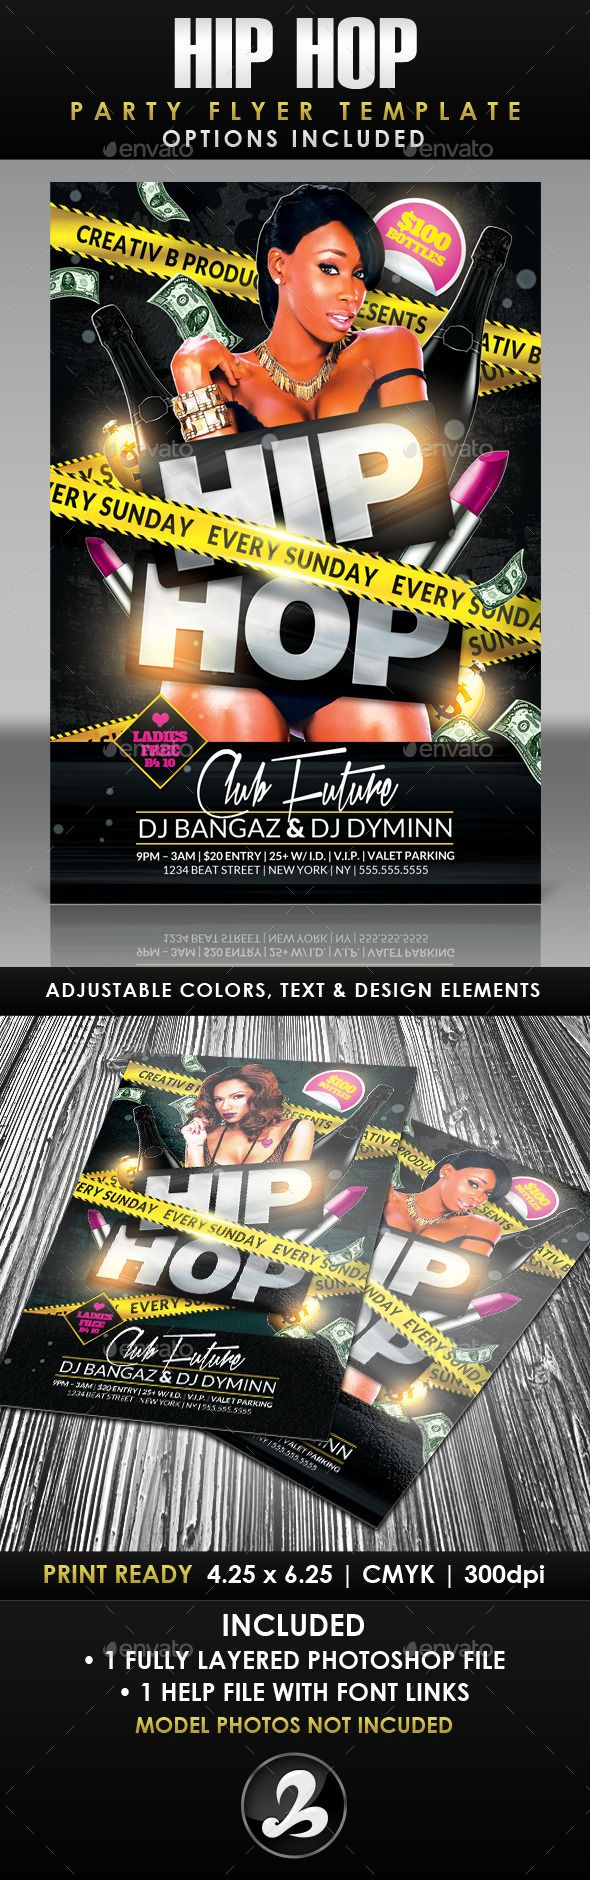 Hip Hop Party Flyer Template 2 — Photoshop PSD #urban #police tape • Available here → https://graphicriver.net/item/hip-hop-party-flyer-template-2/10470265?ref=pxcr